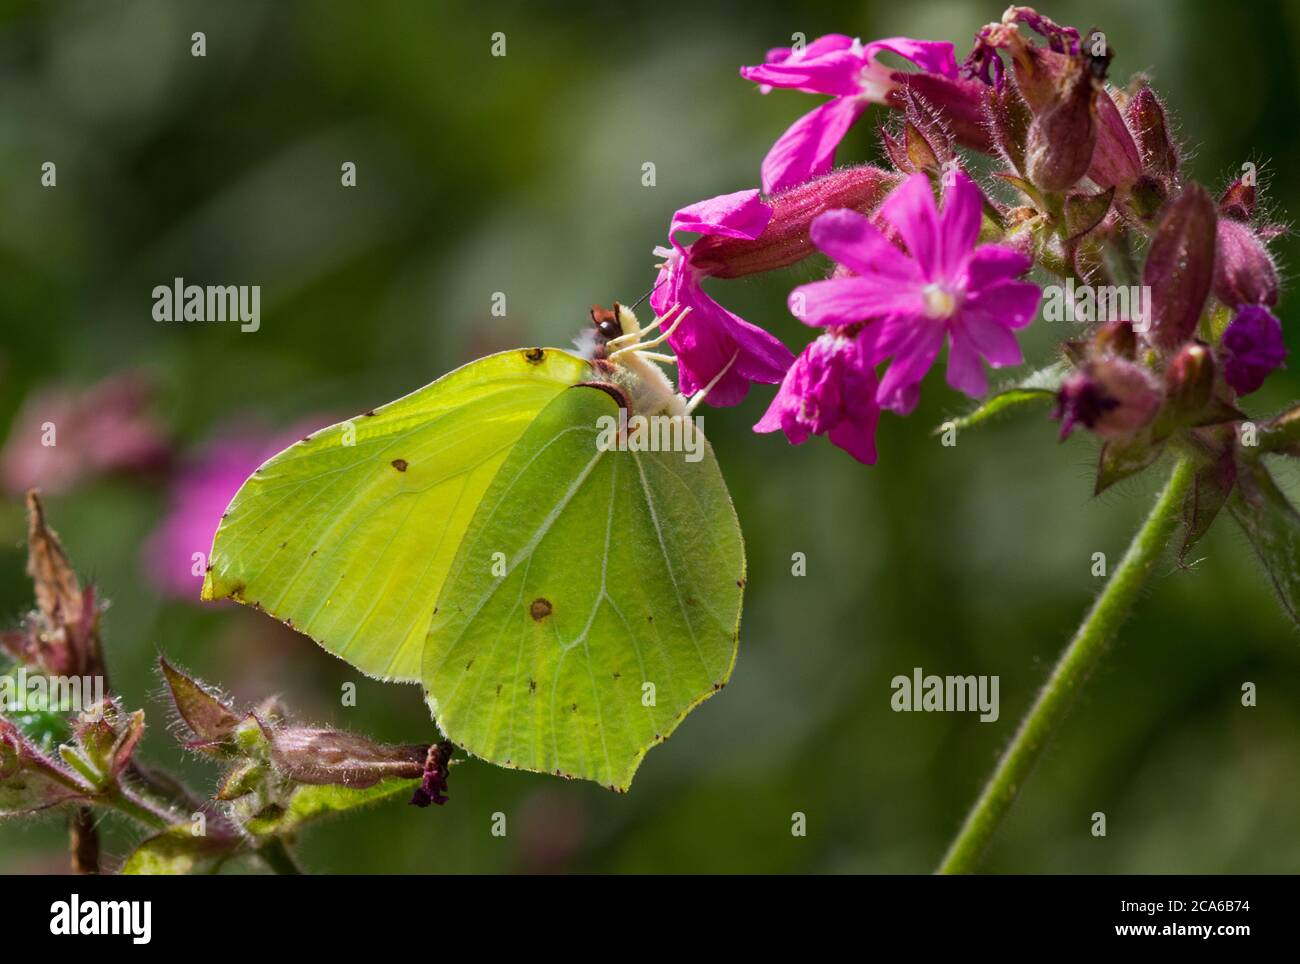 Common brimstone butterfly on the pink flower of Red campion Stock Photo